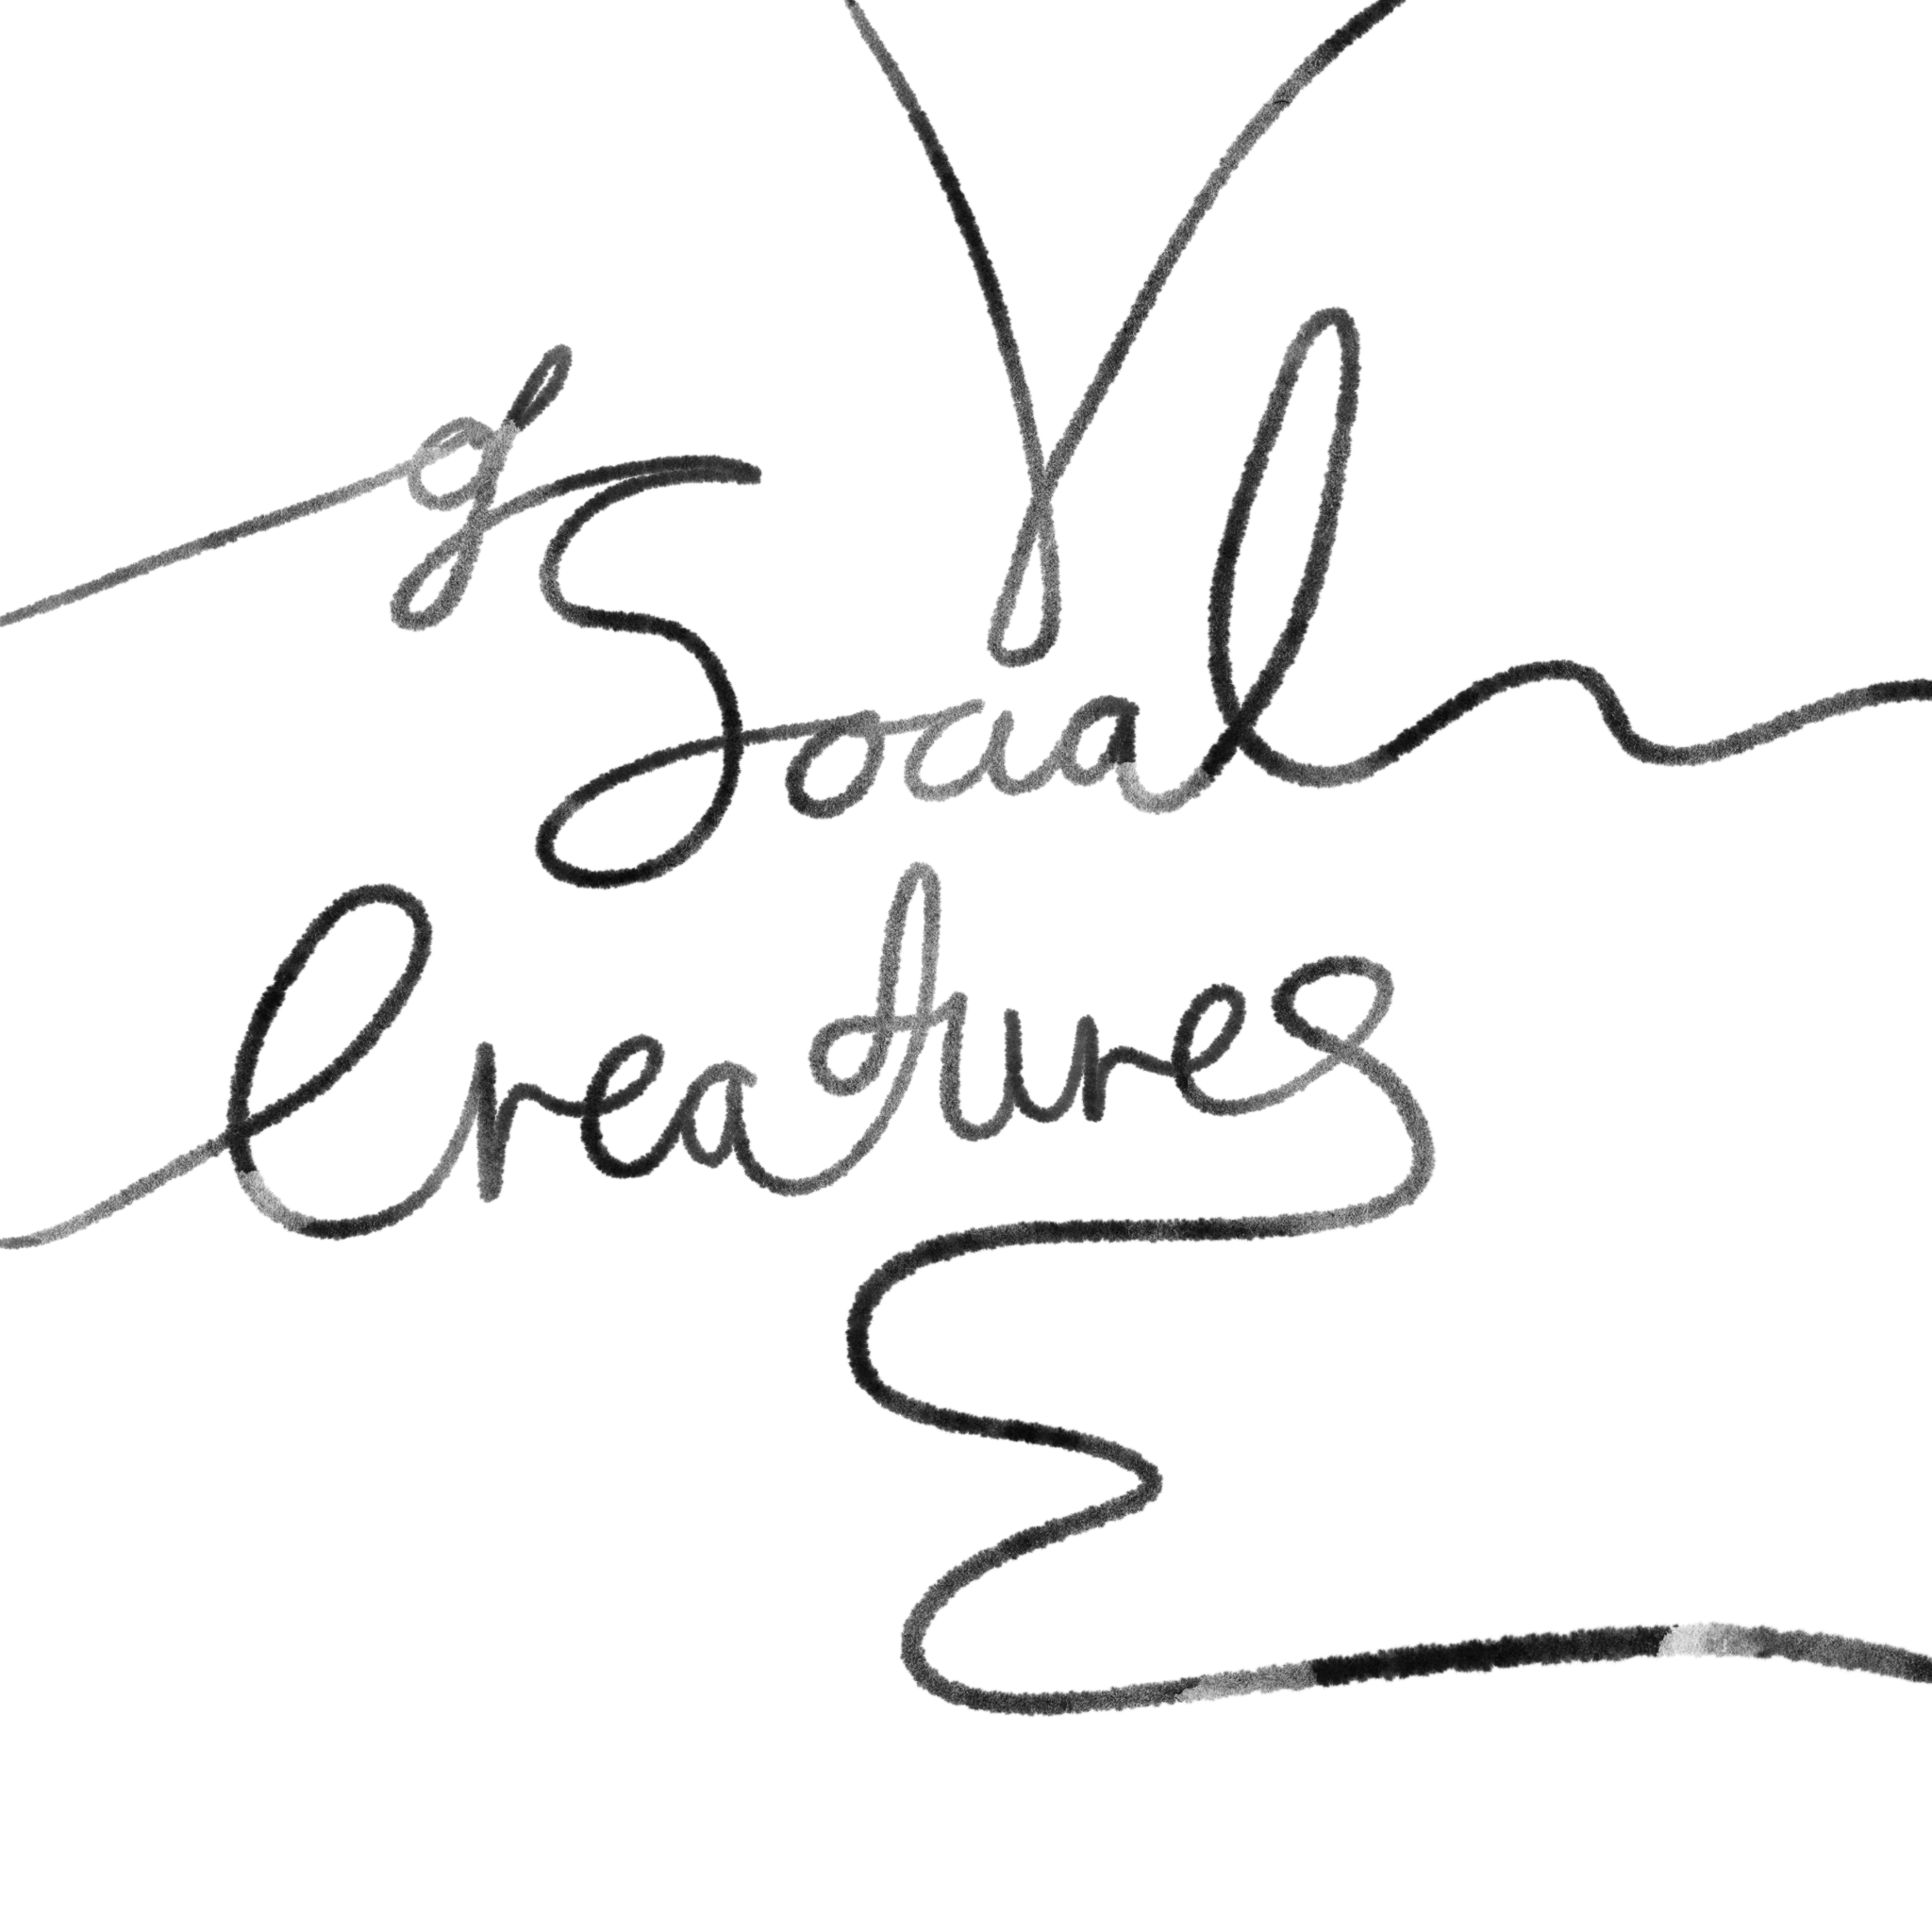 Of Social Creatures